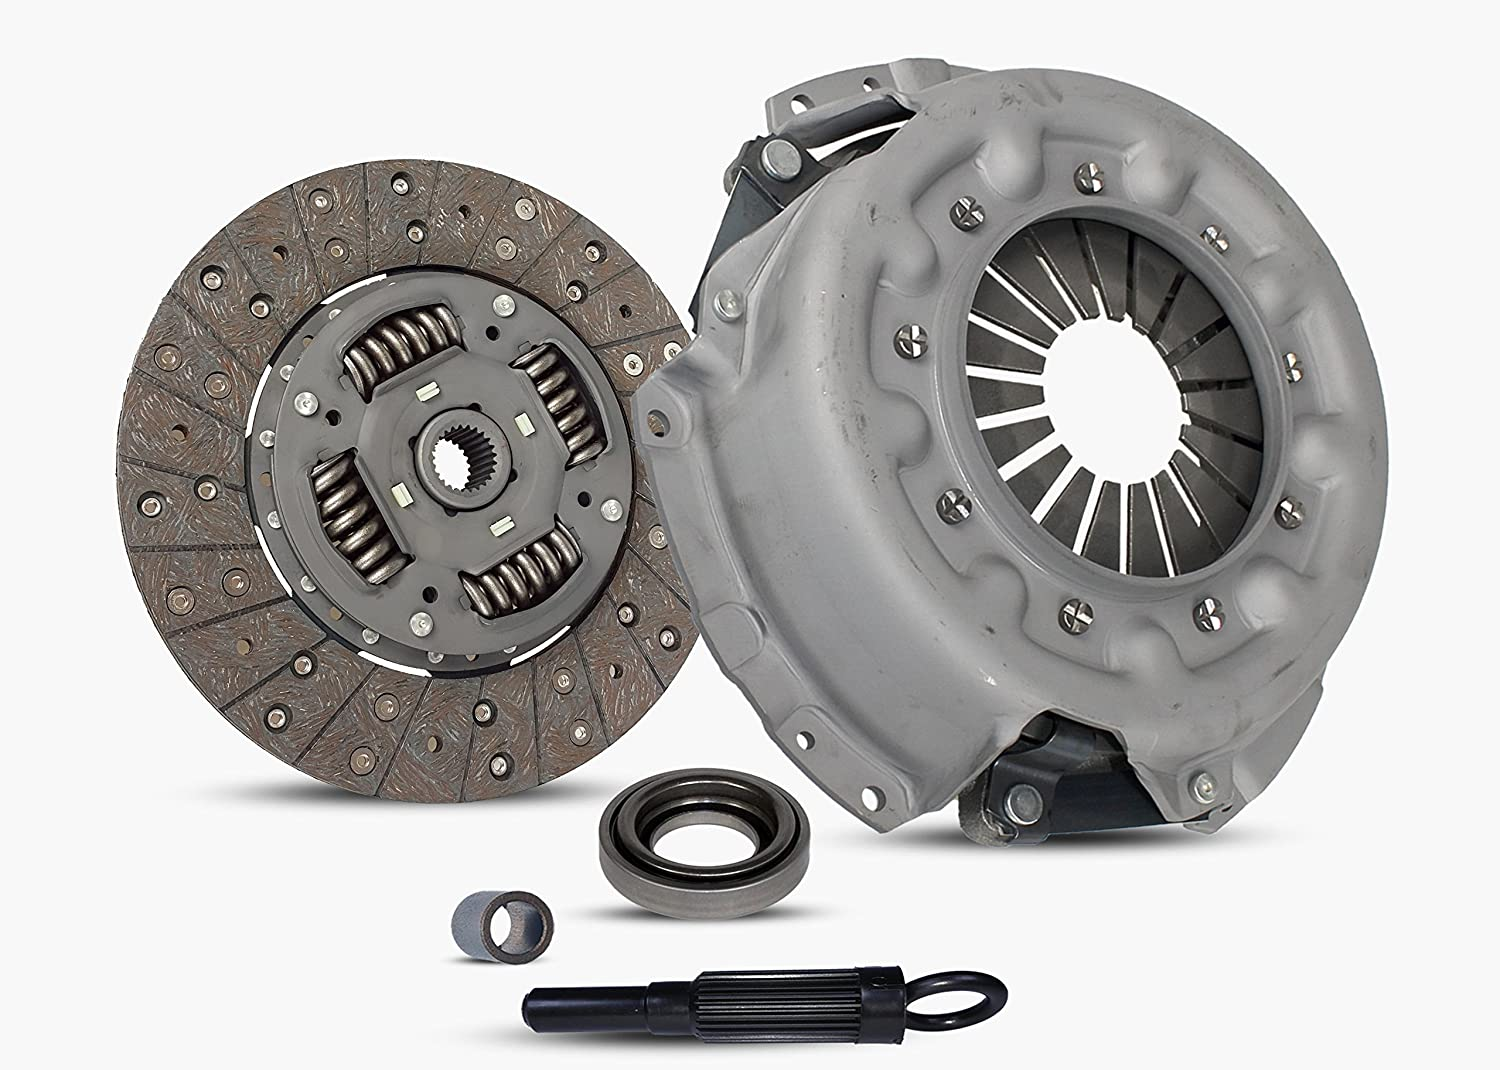 Clutch Kit Works With Nissan Frontier Pathfinder Xterra Xe Se Le Extended Crew Cab Pickup 4-Door Sport Utility 4-Door 1997-2004 3.3L V6 GAS SOHC Naturally ...